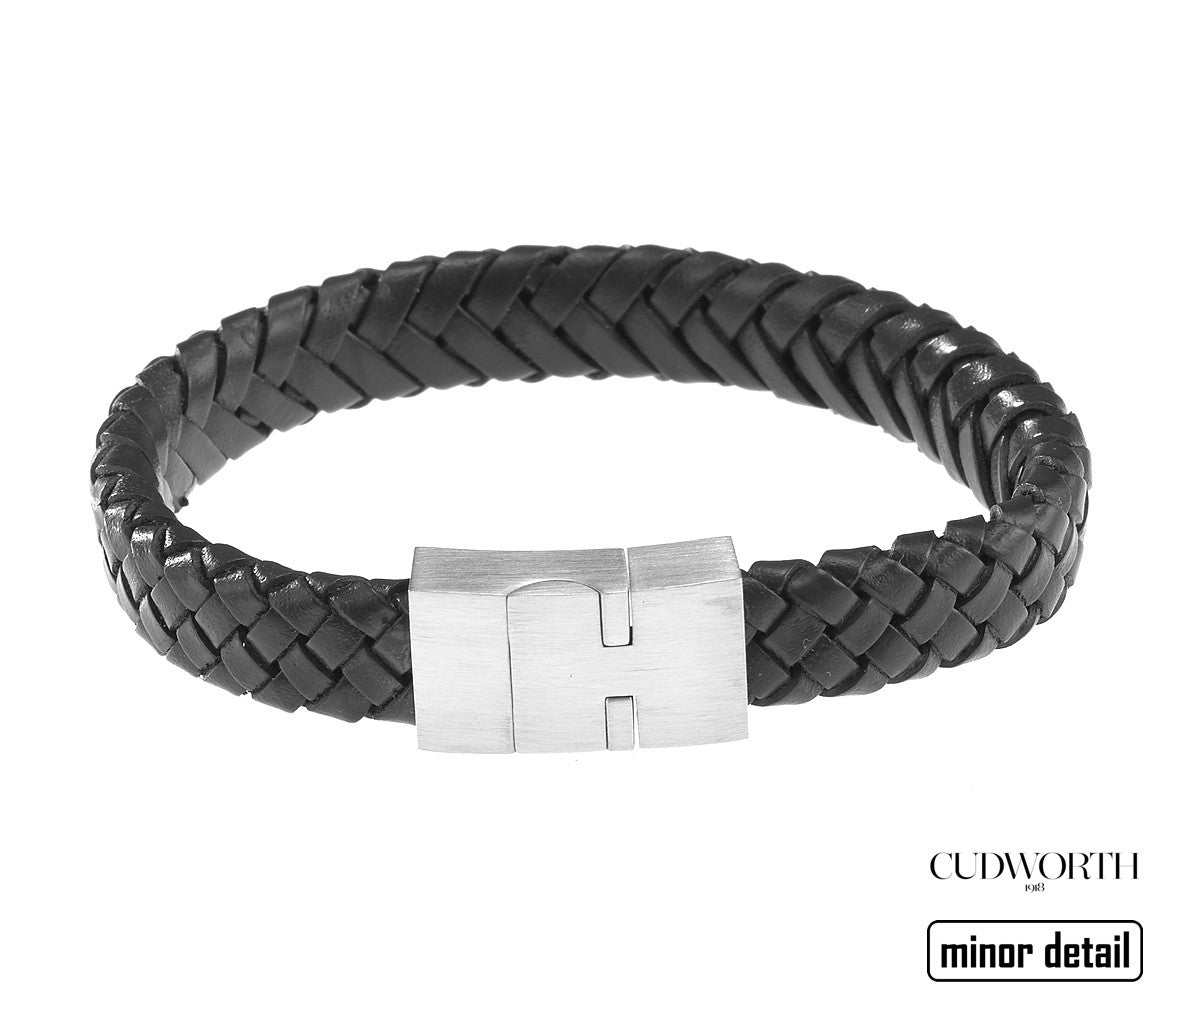 New Mens Leather Bracelet by Cudworth Sydney.